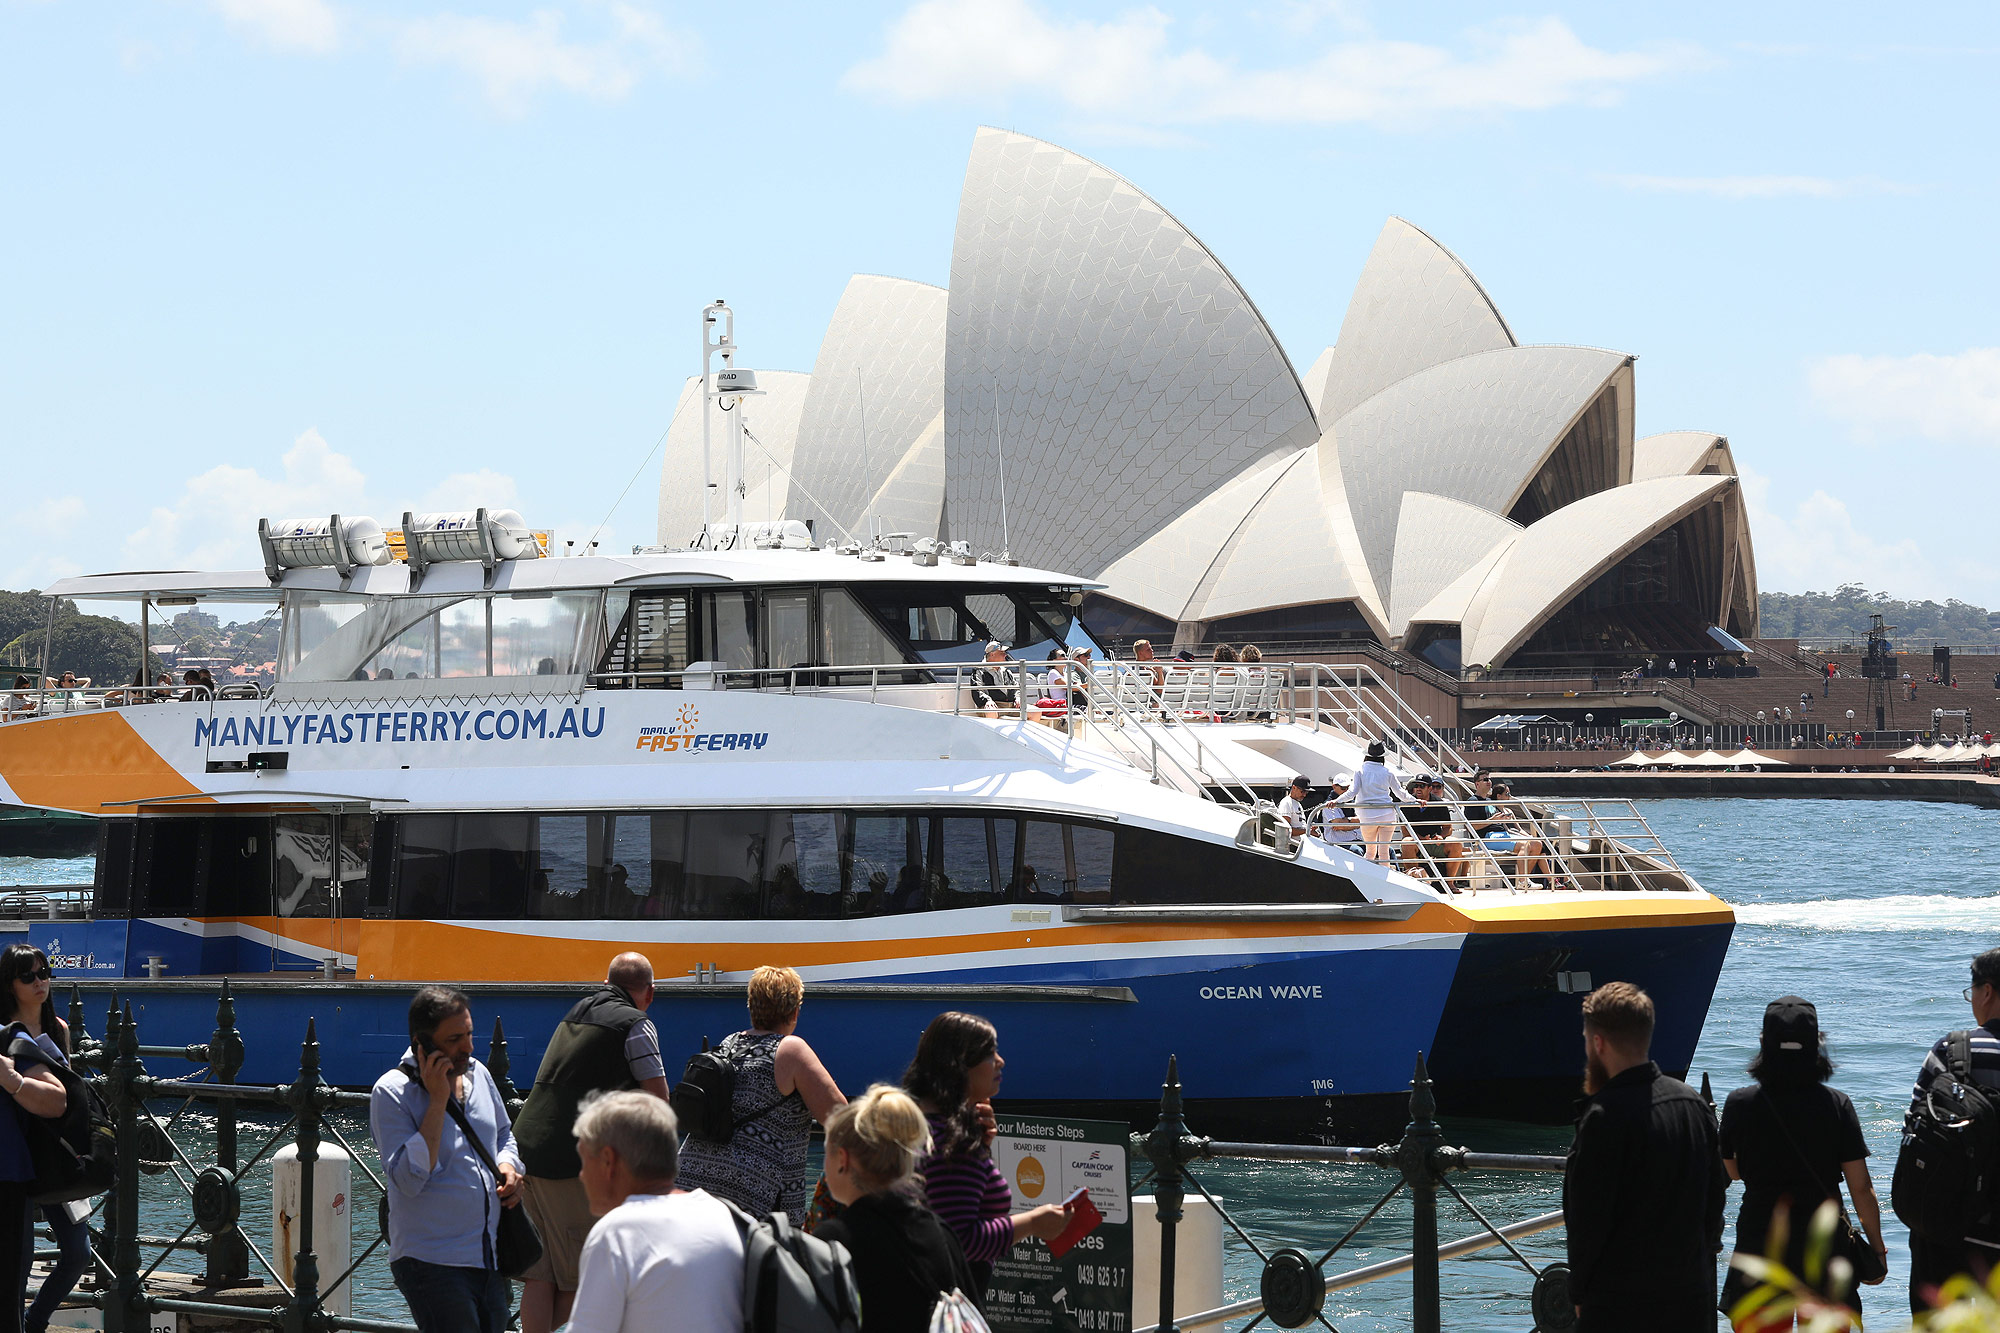 Manly Fast Ferry at Circular Quay